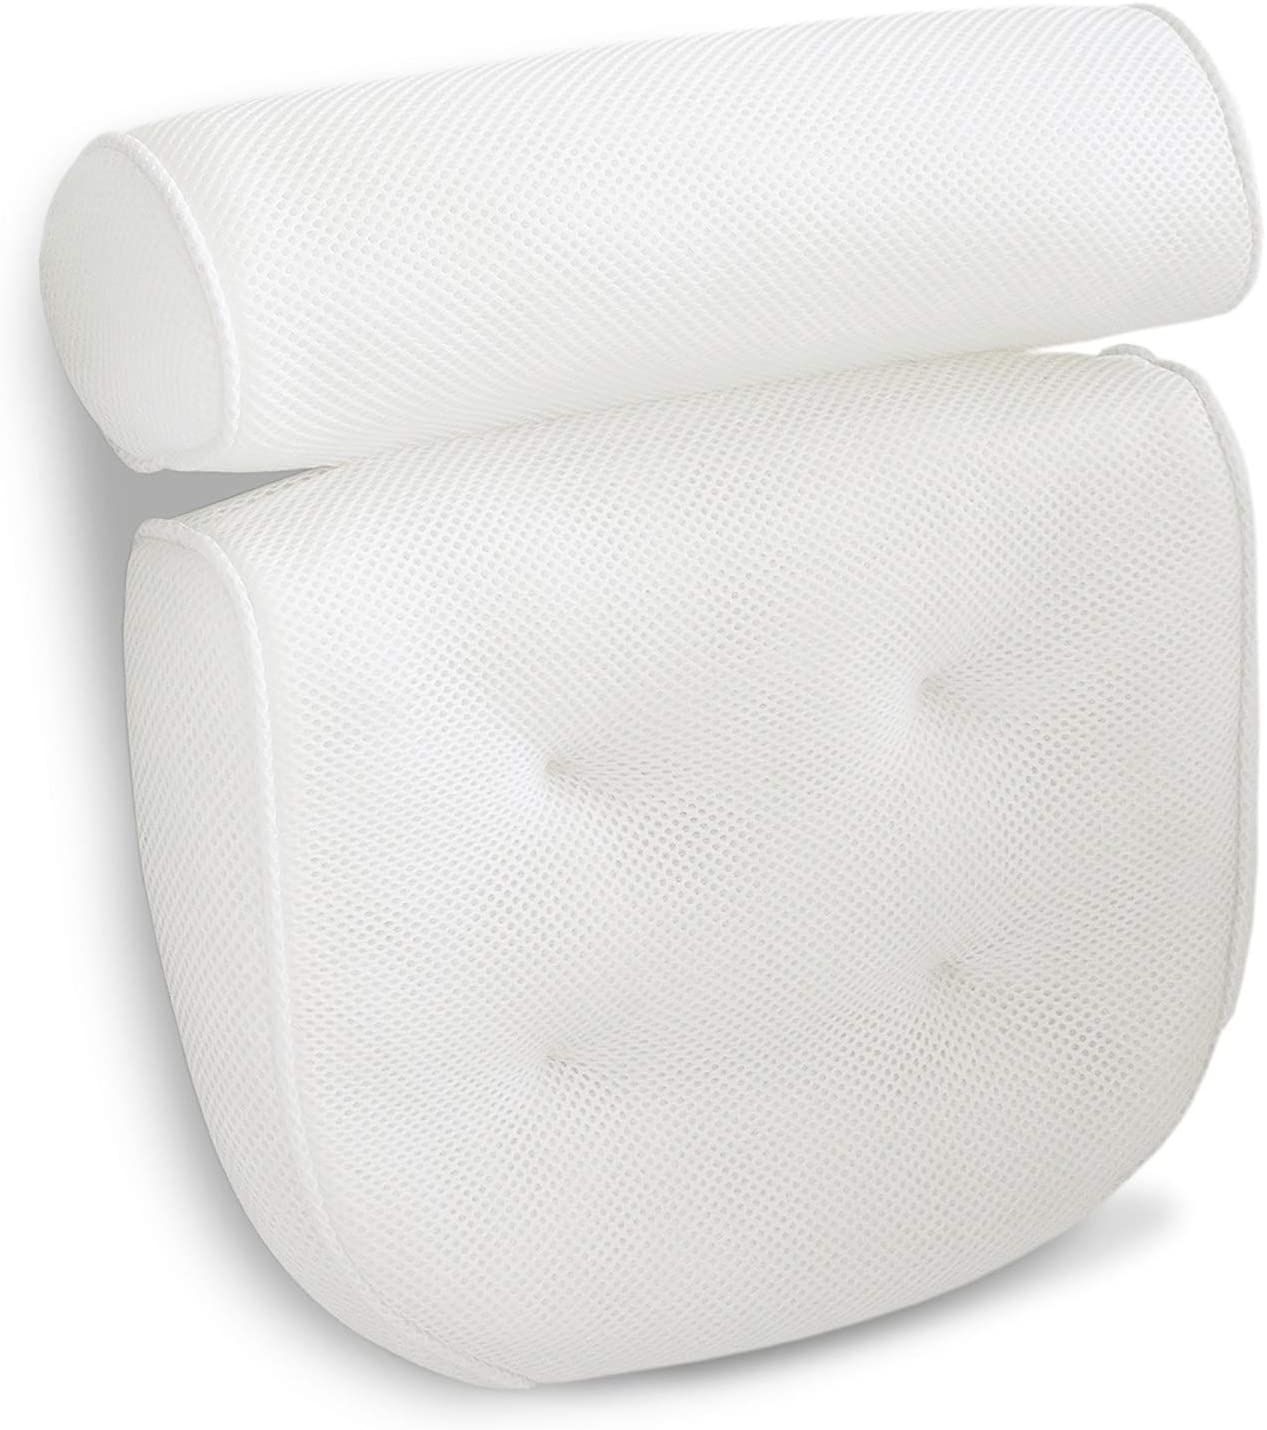 Viventive Luxurious Bath Pillow